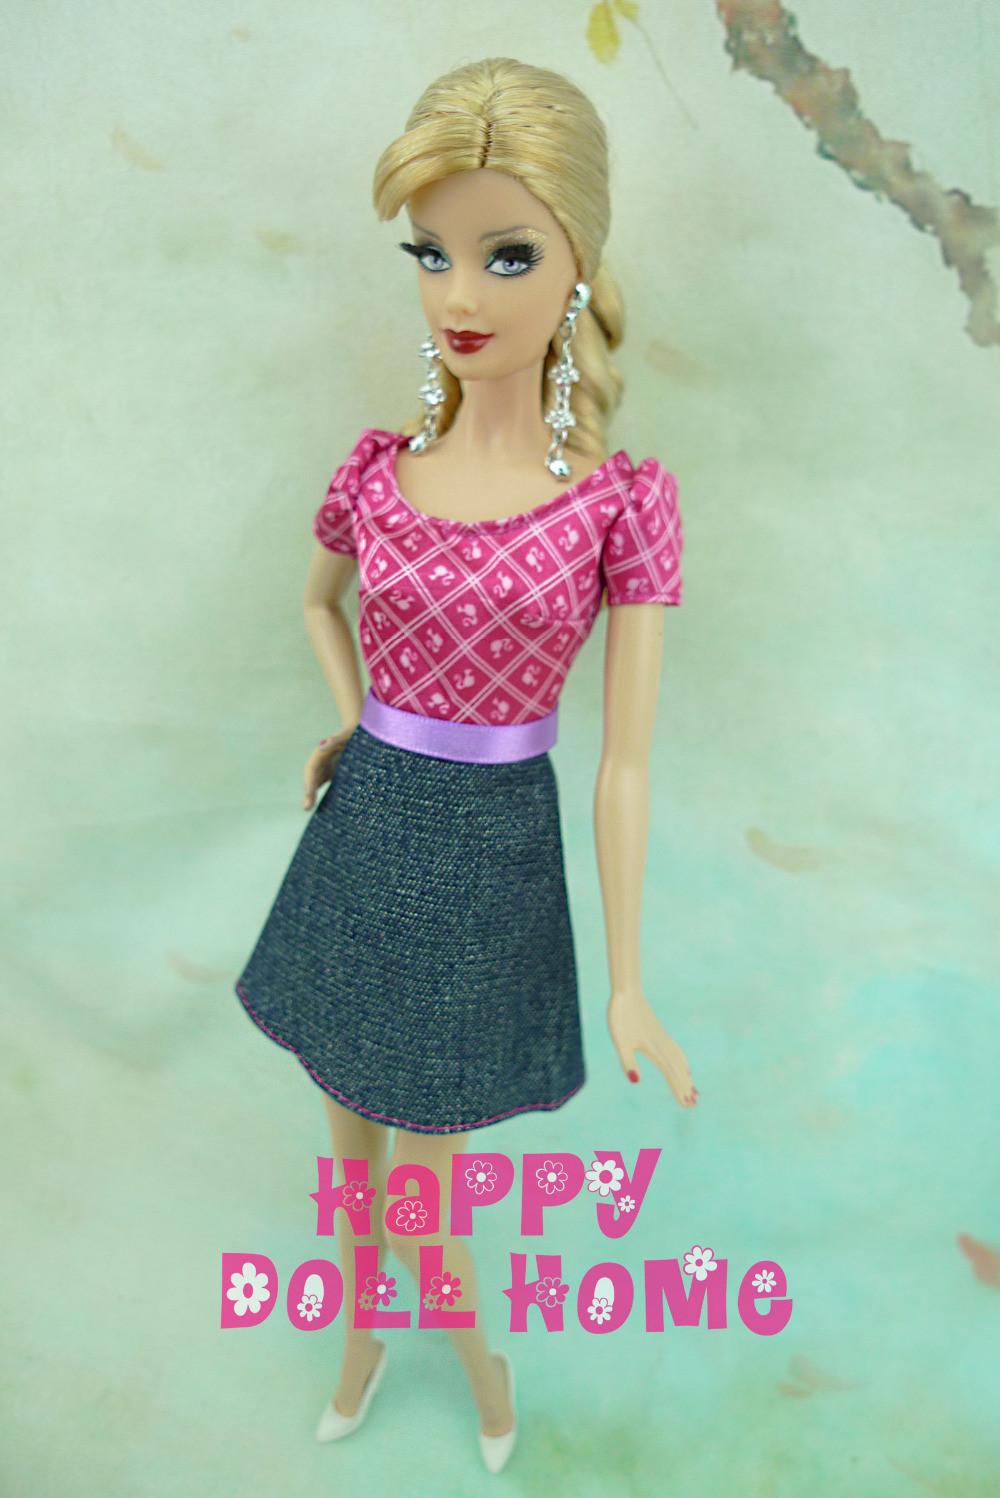 Trend Cute Costume With Denim Backside Skirt Quick Sleeved Outfit Summer season Garments For Barbie Doll 12″ Woman Favor Reward (NO DOLL!)